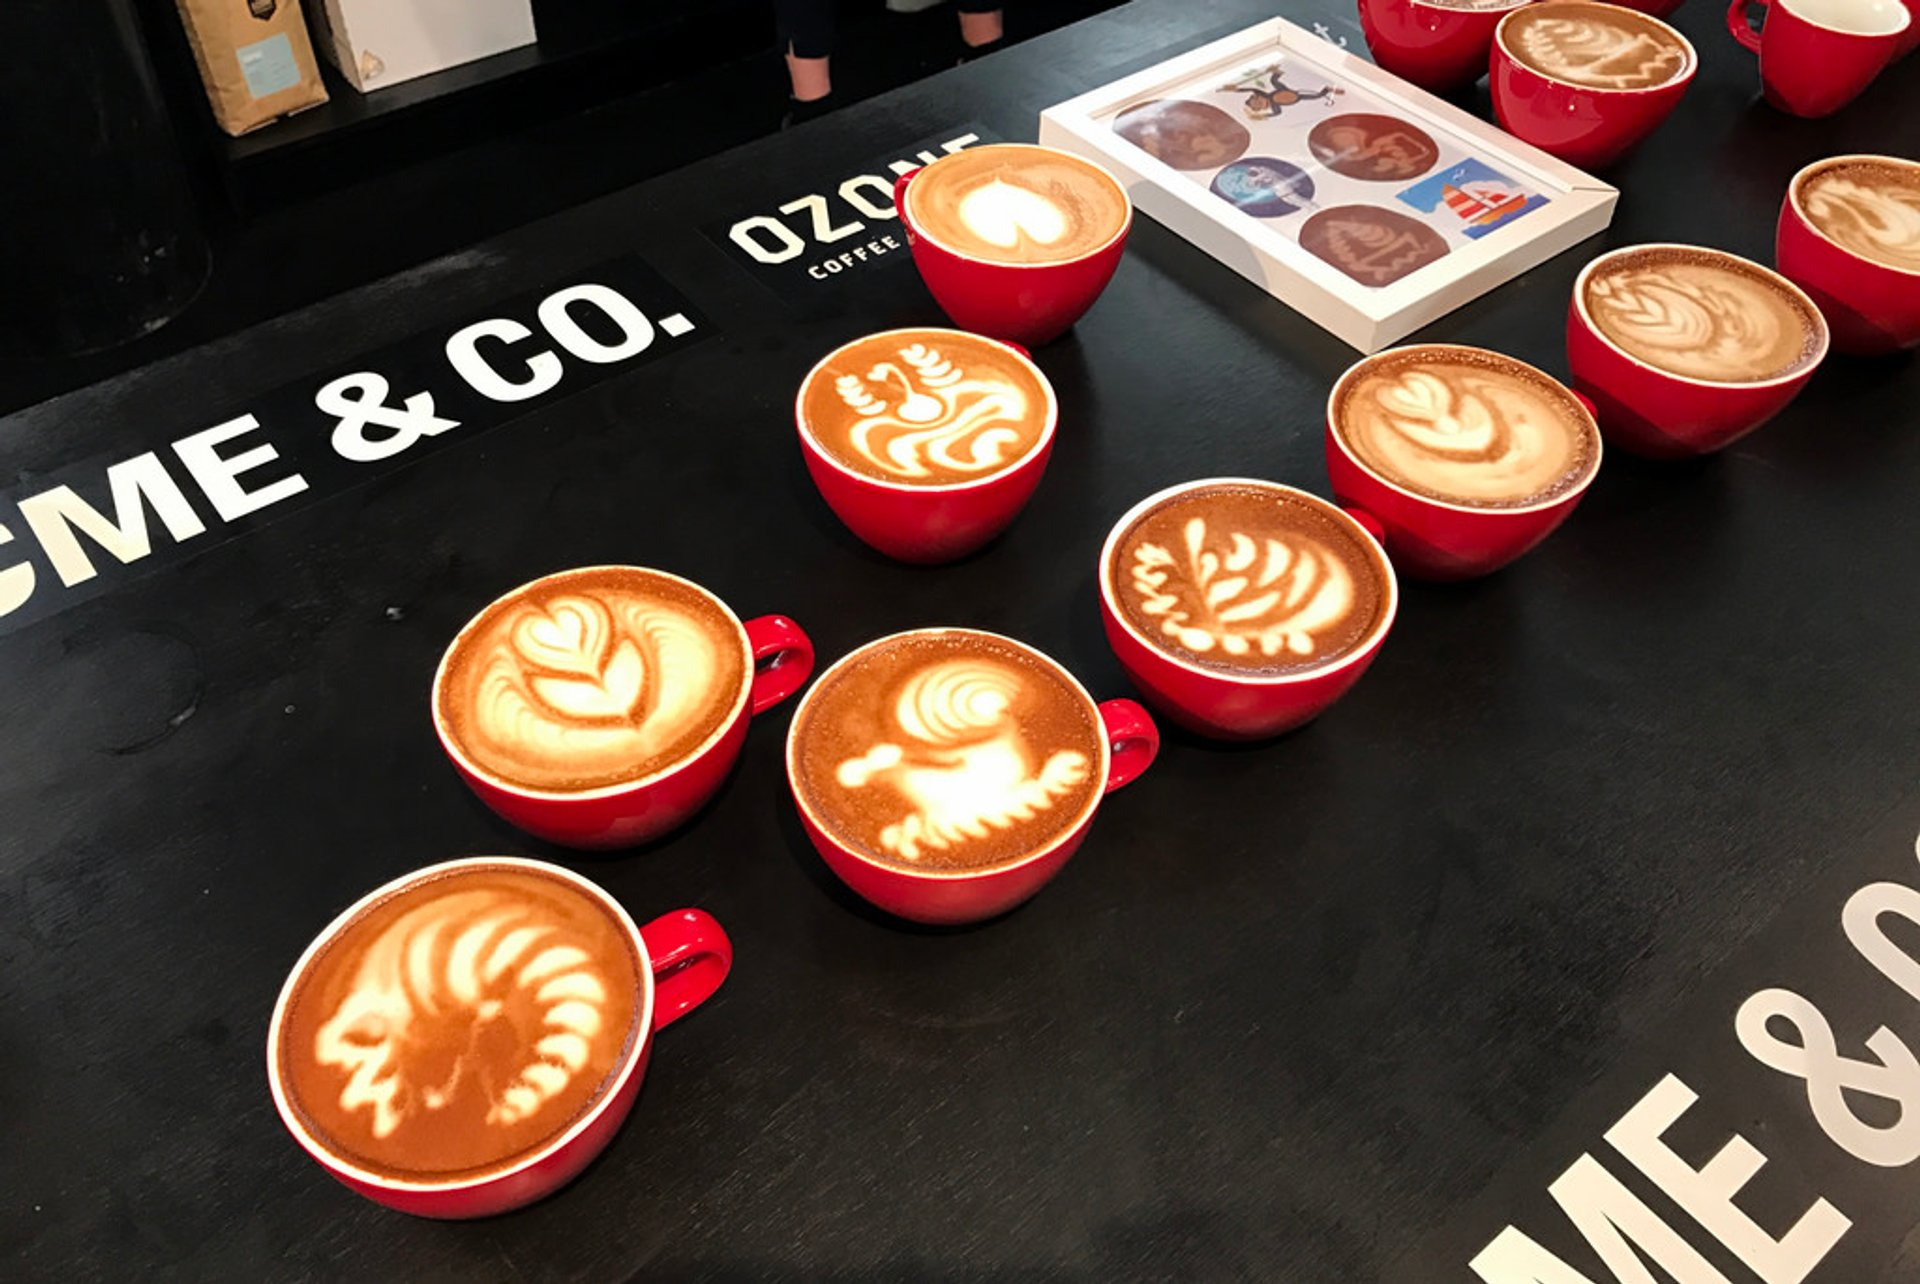 London Coffee Festival in London - Best Season 2020